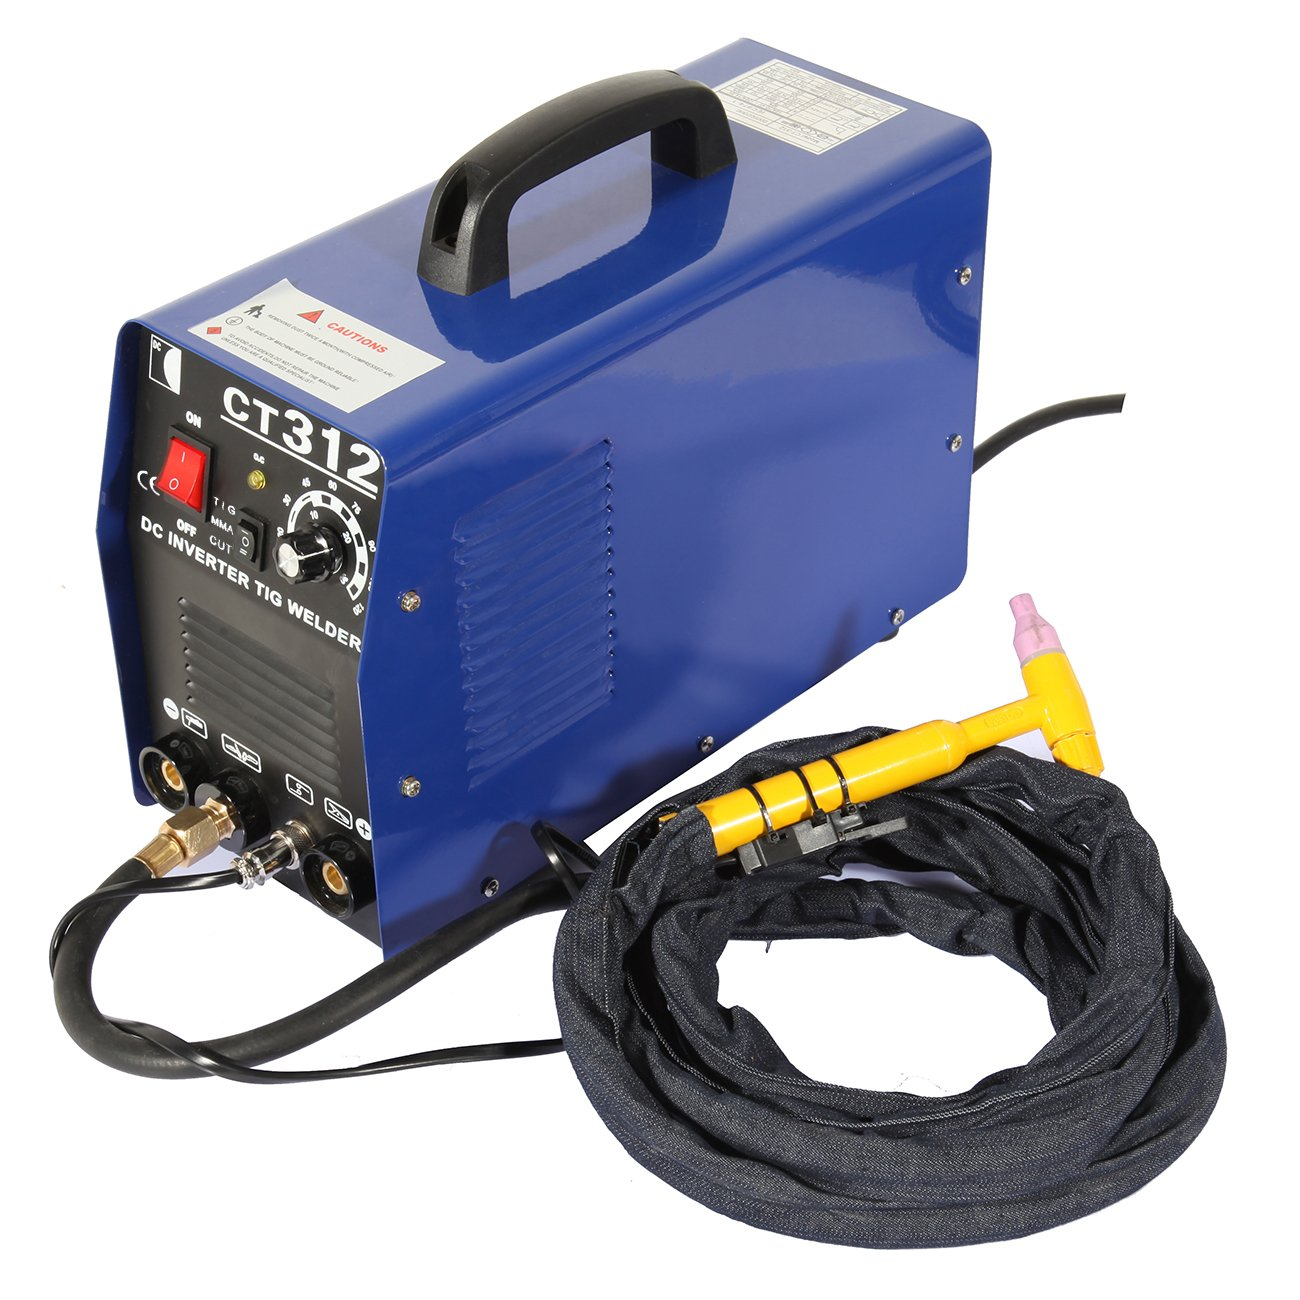 For Mosfet Cut 40 Plasma Cutter Circuit Board Pc 220v Iglobalbuy Portable 3 In 1 Combo Welding Machine Multi Functional Air Inverter Ct312 Tig Mma Welder